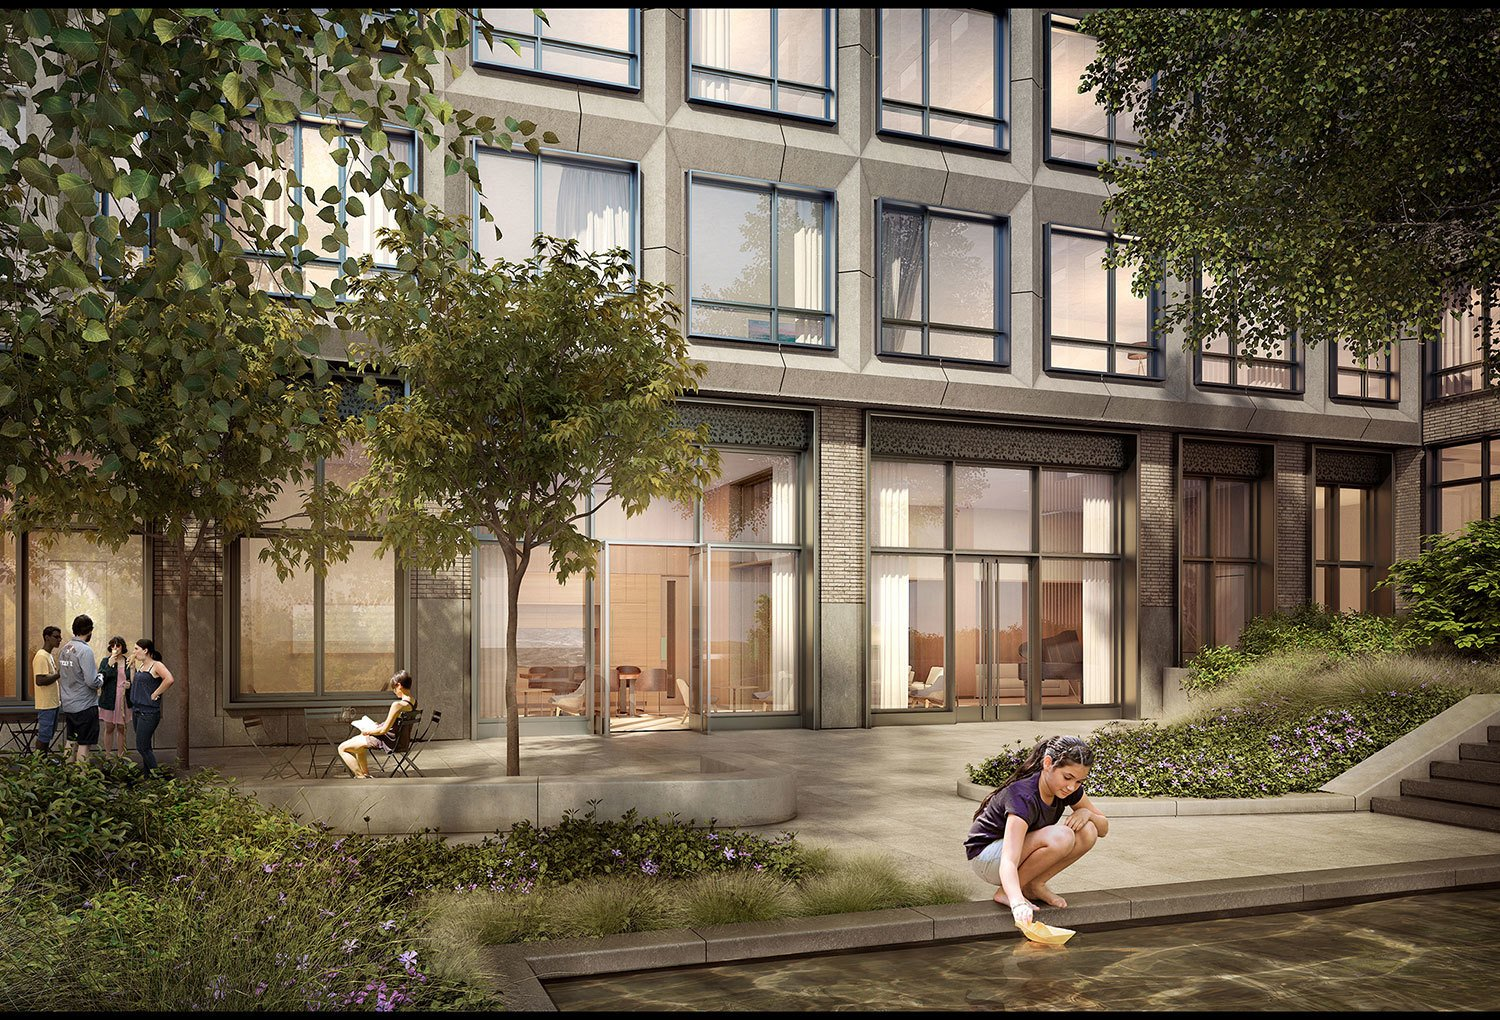 550 Vanderbilt residents will have the urban luxury of courtyard green space.  Photo 3 of 8 in 3 New York City Residential Projects That Feature DIY Urban Gardens